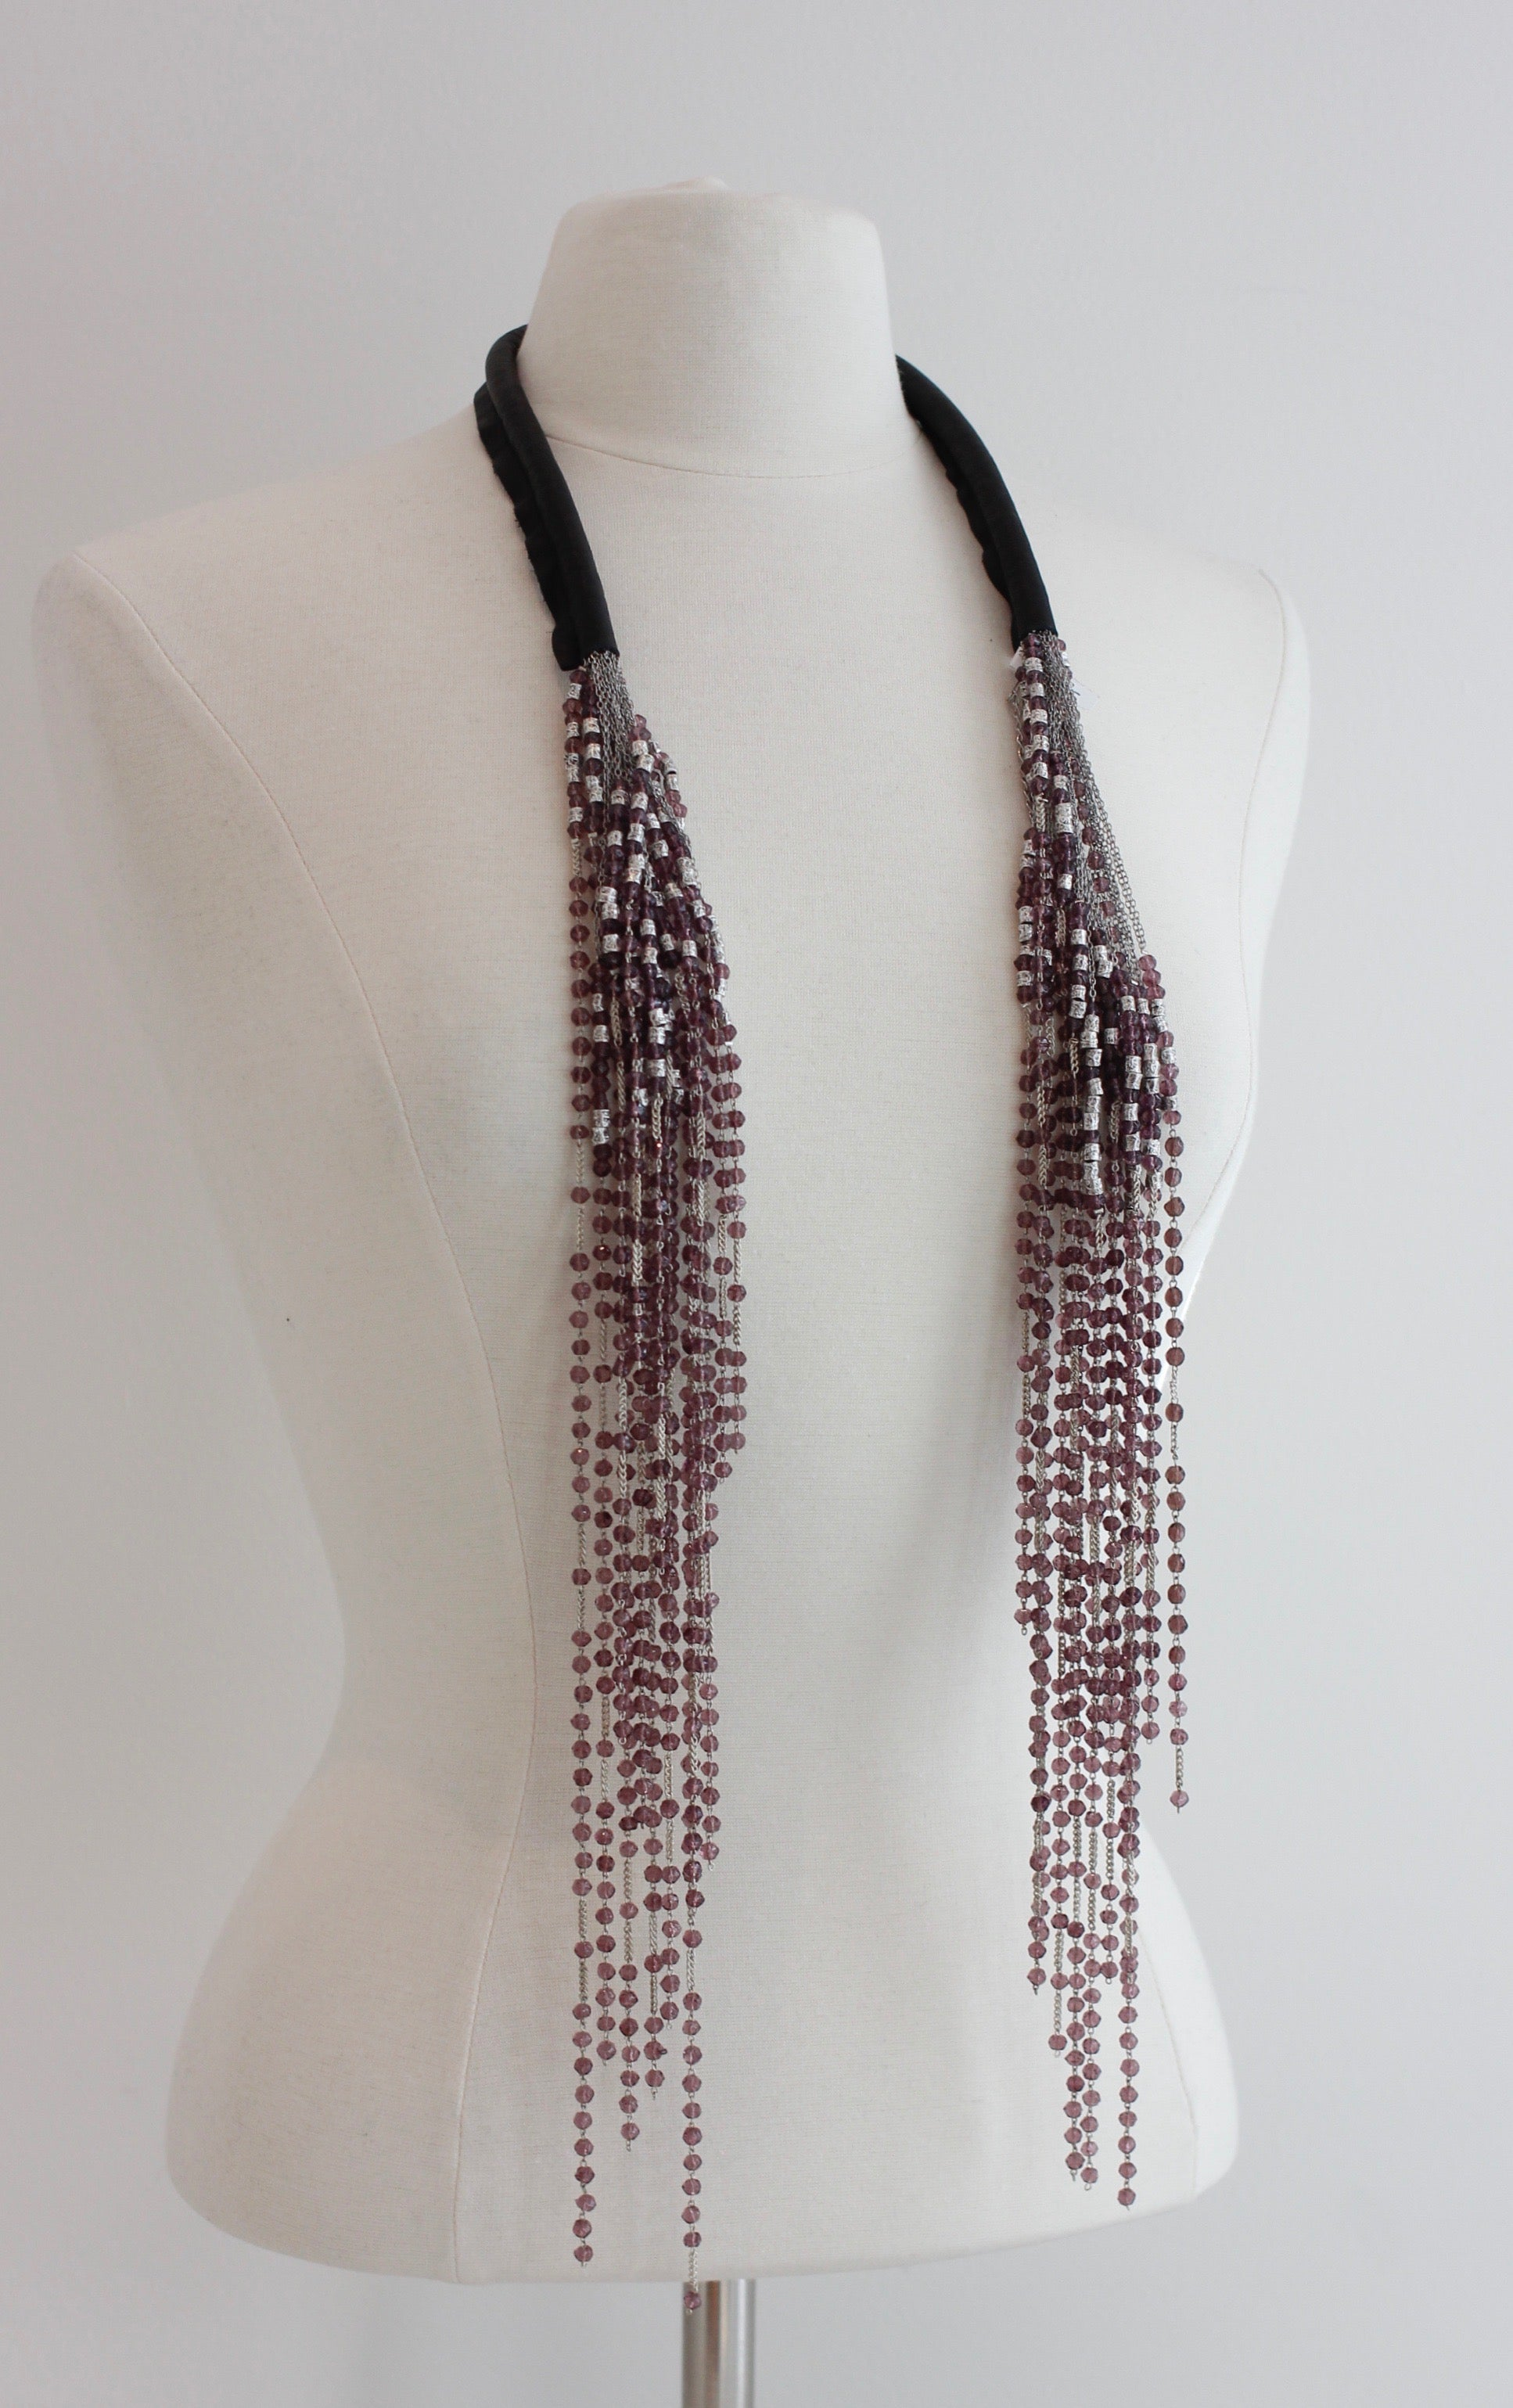 JEAN-FRANCOIS MIMILLA Glass Bead And Leather Necklace COL107 - Habits Jackson Hole